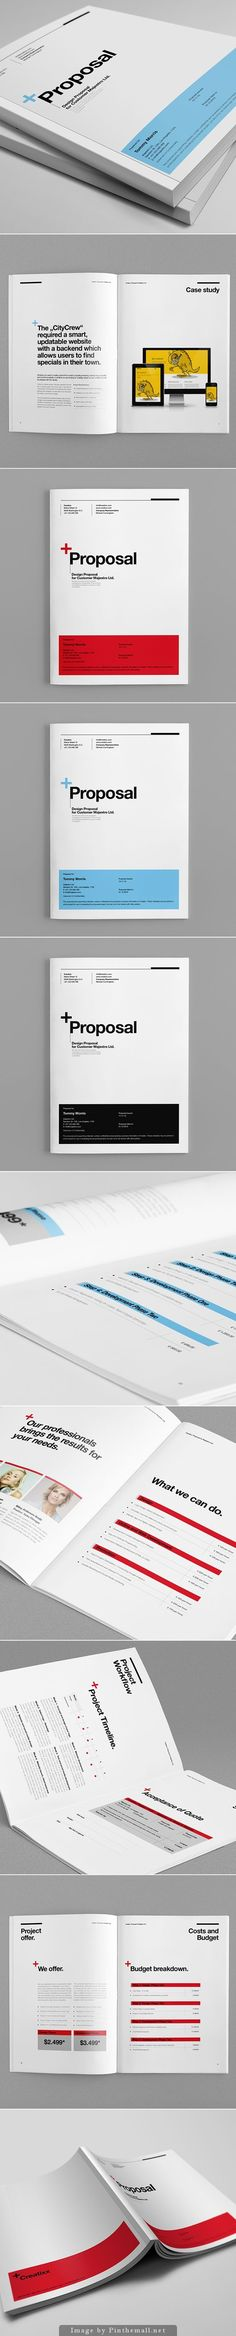 Proposal Template Suisse Design with Invoice - created via http://pinthemall.net: